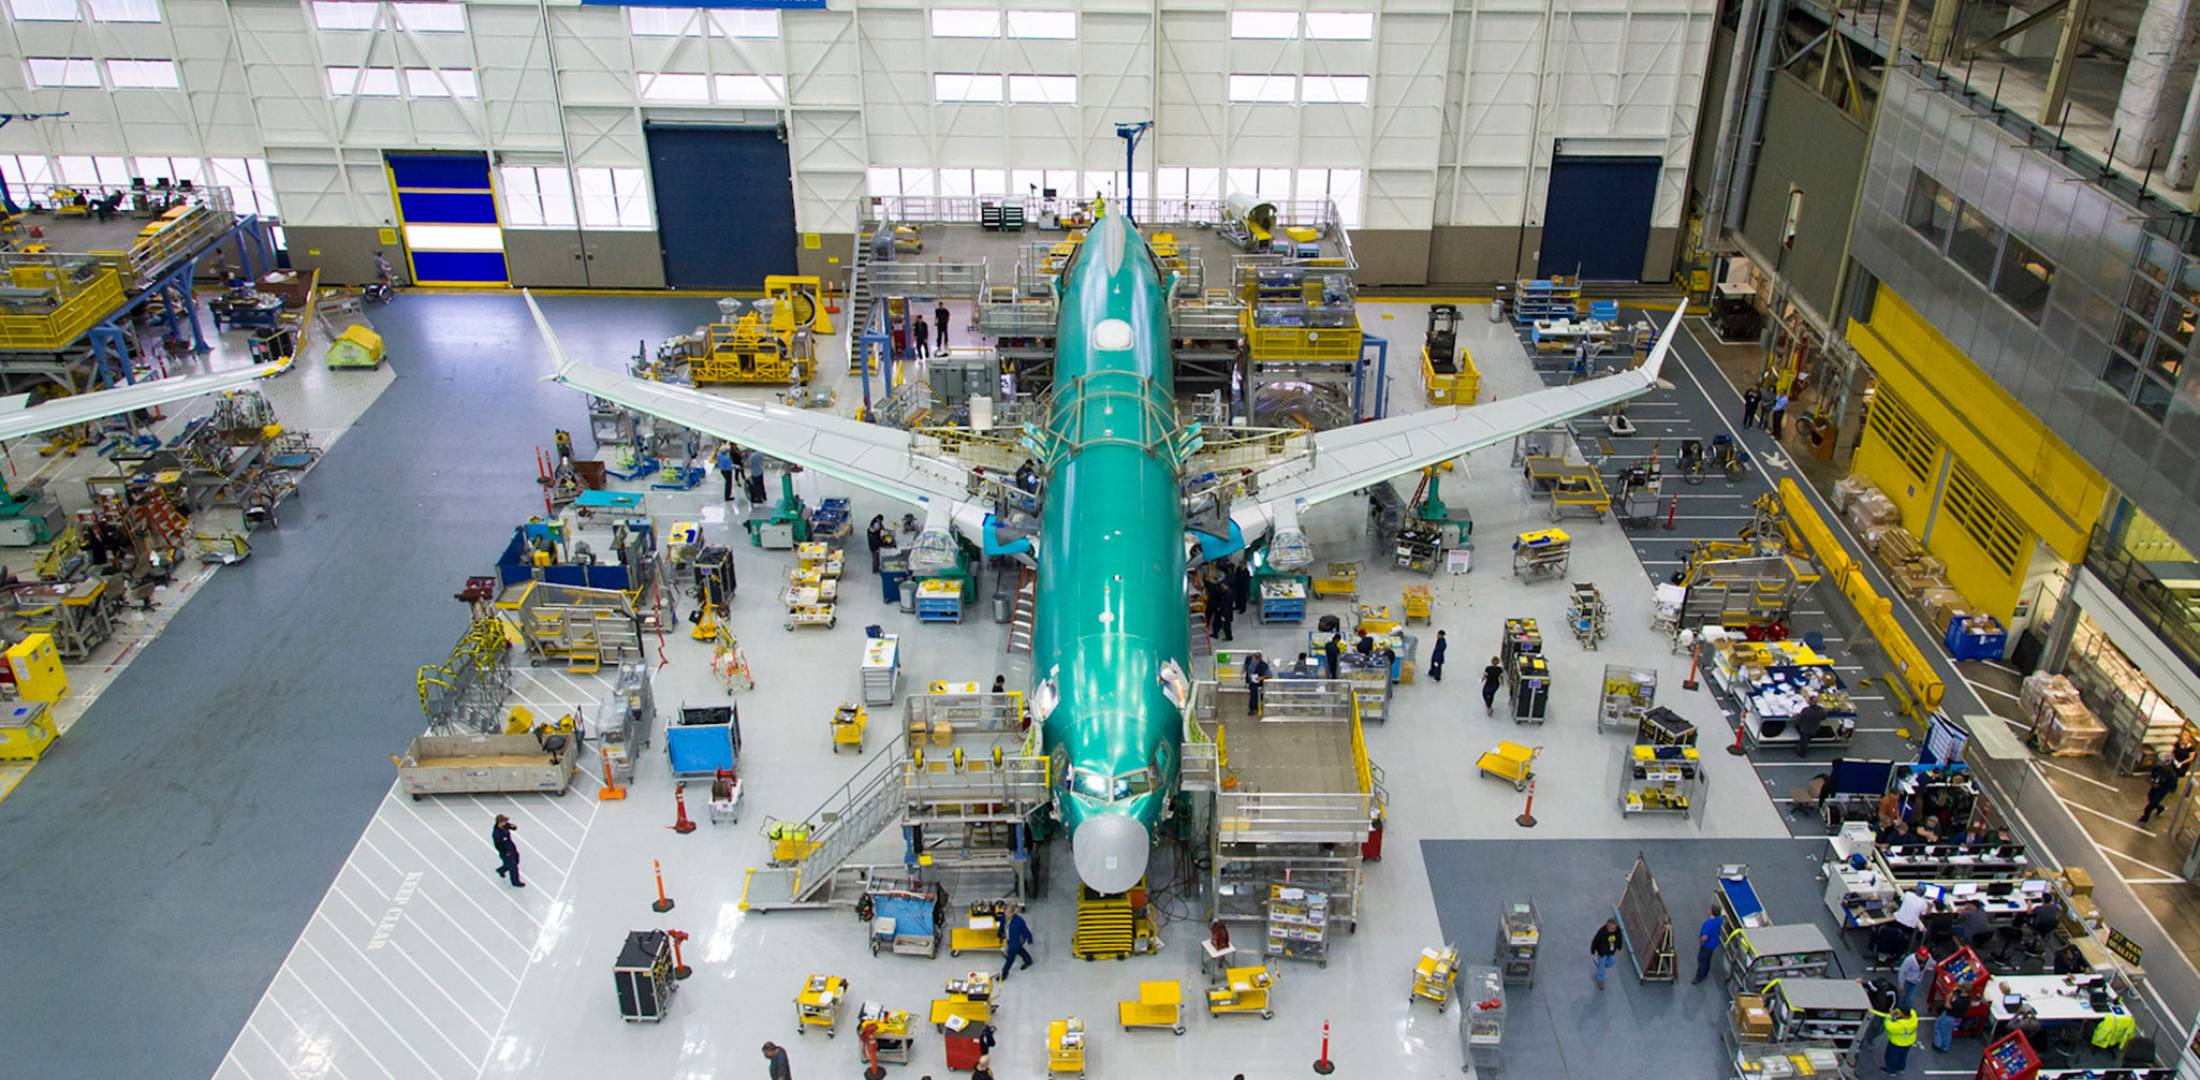 airplane in hangar being worked on